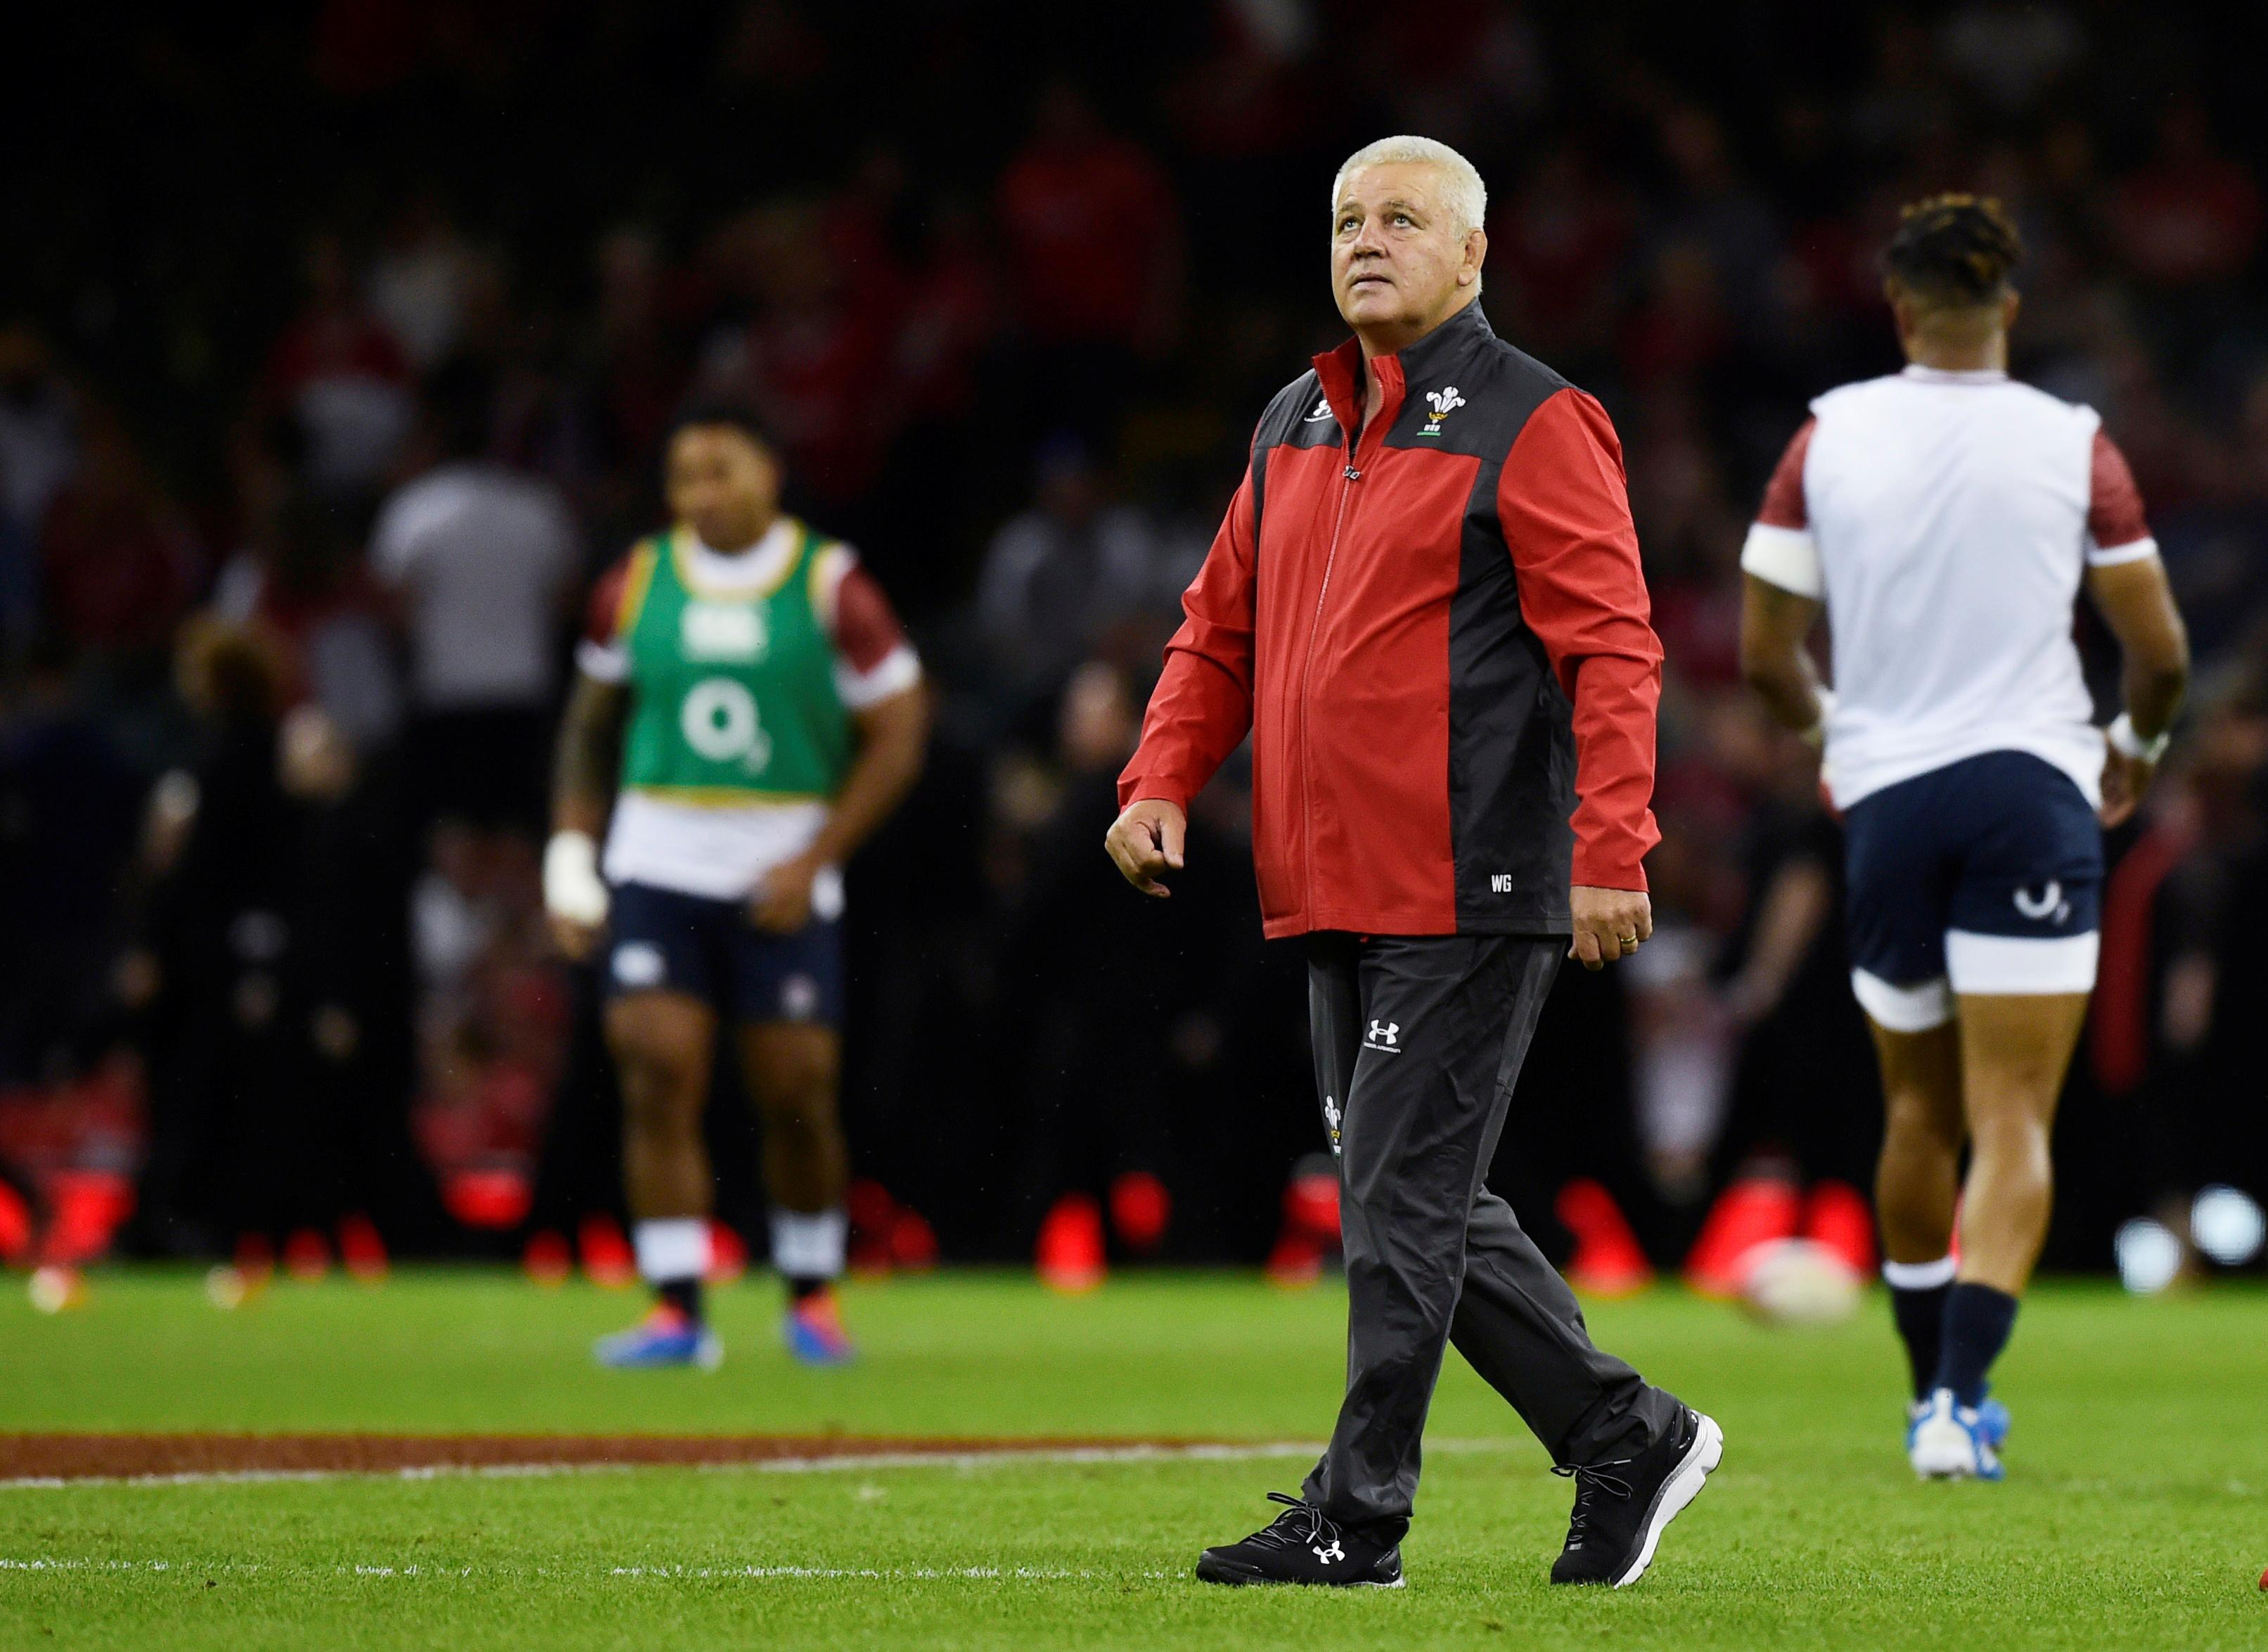 Rugby-Done with experiments, Wales eying hot start - Gatland